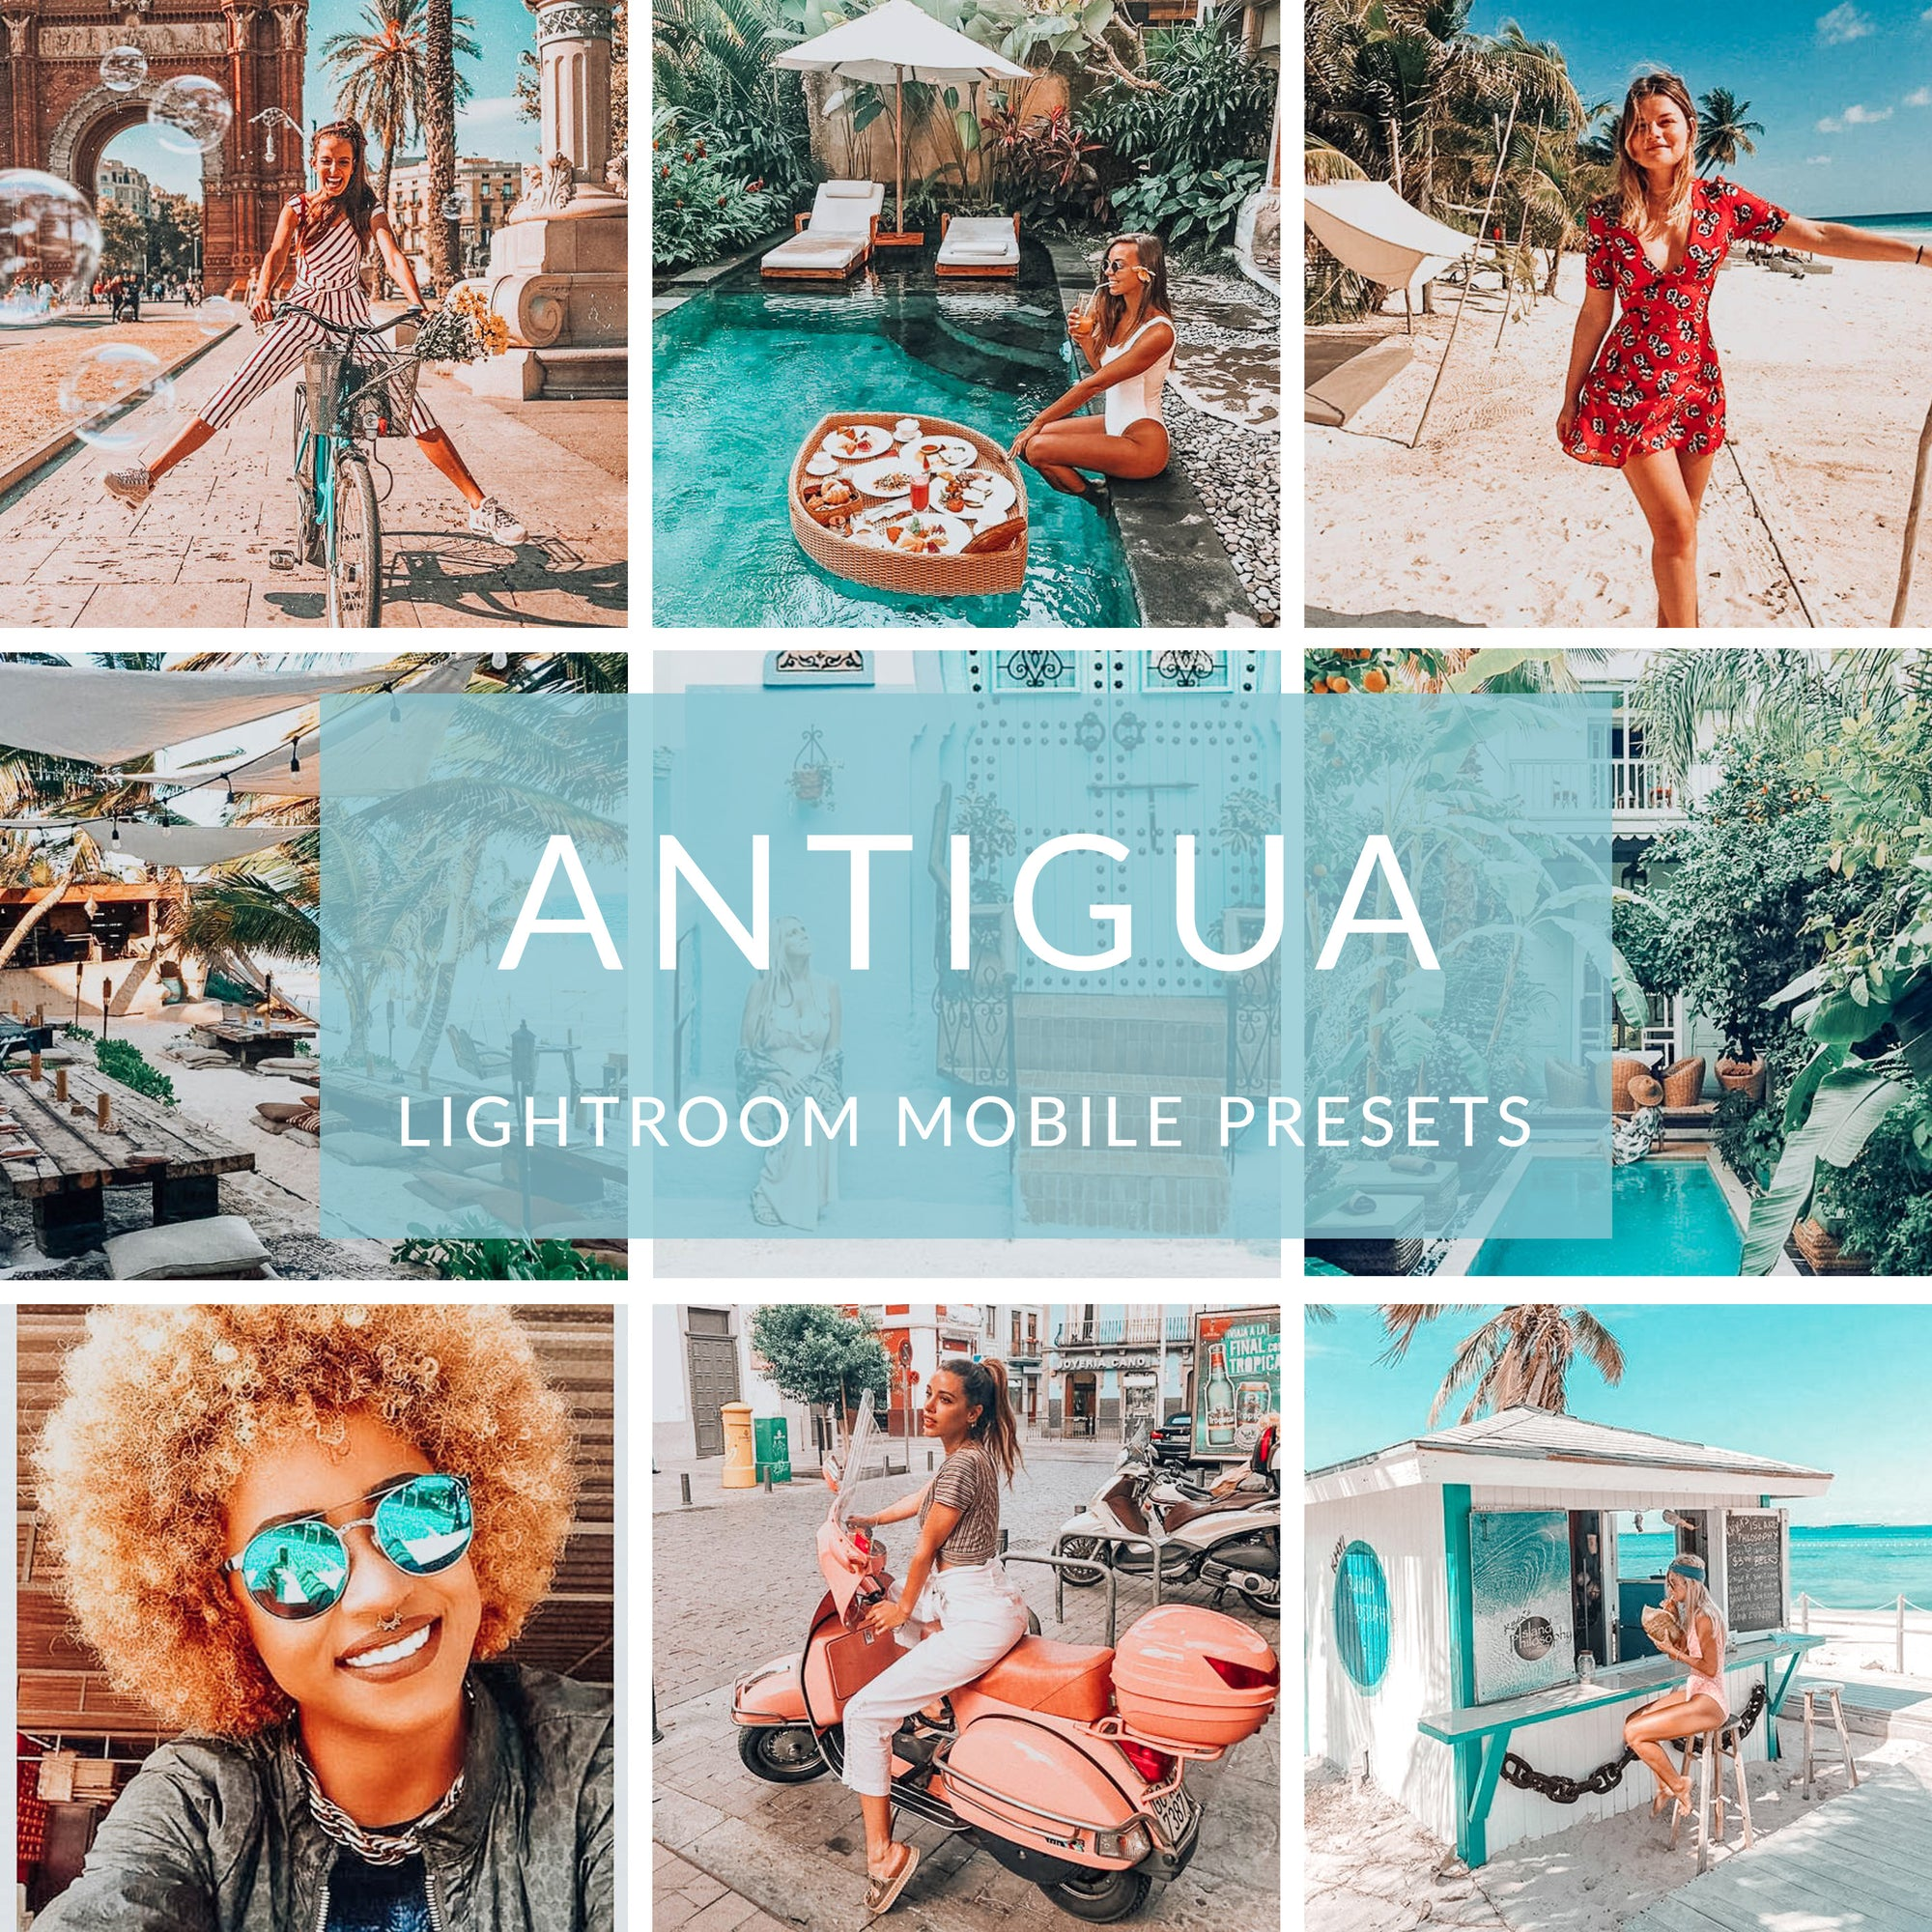 Antigua Lightroom Mobile Presets